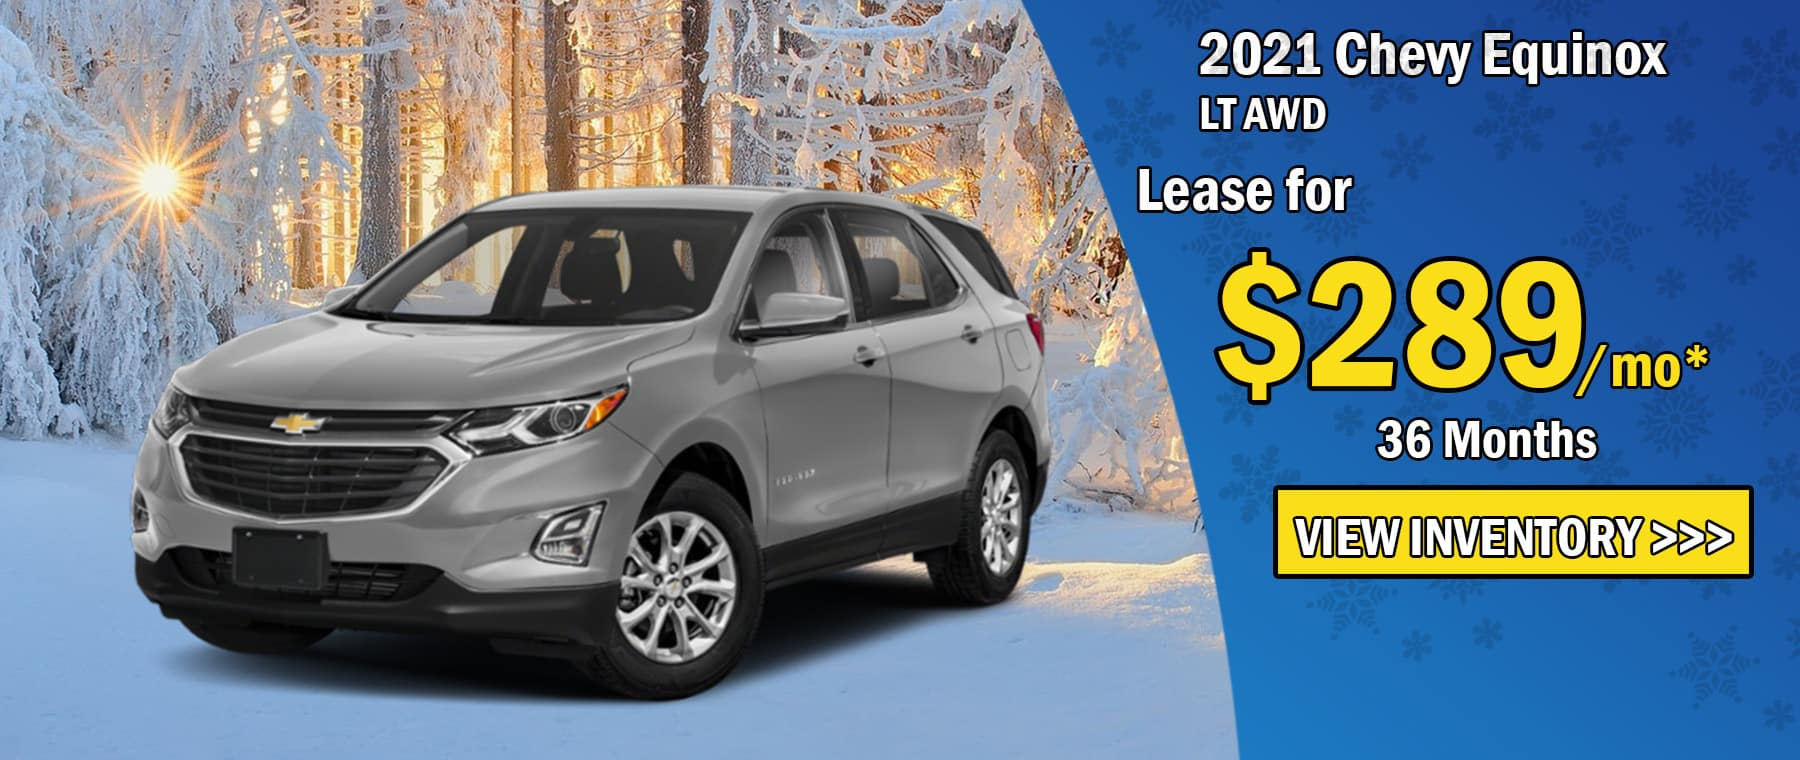 Jan 2021 Equinox Lease